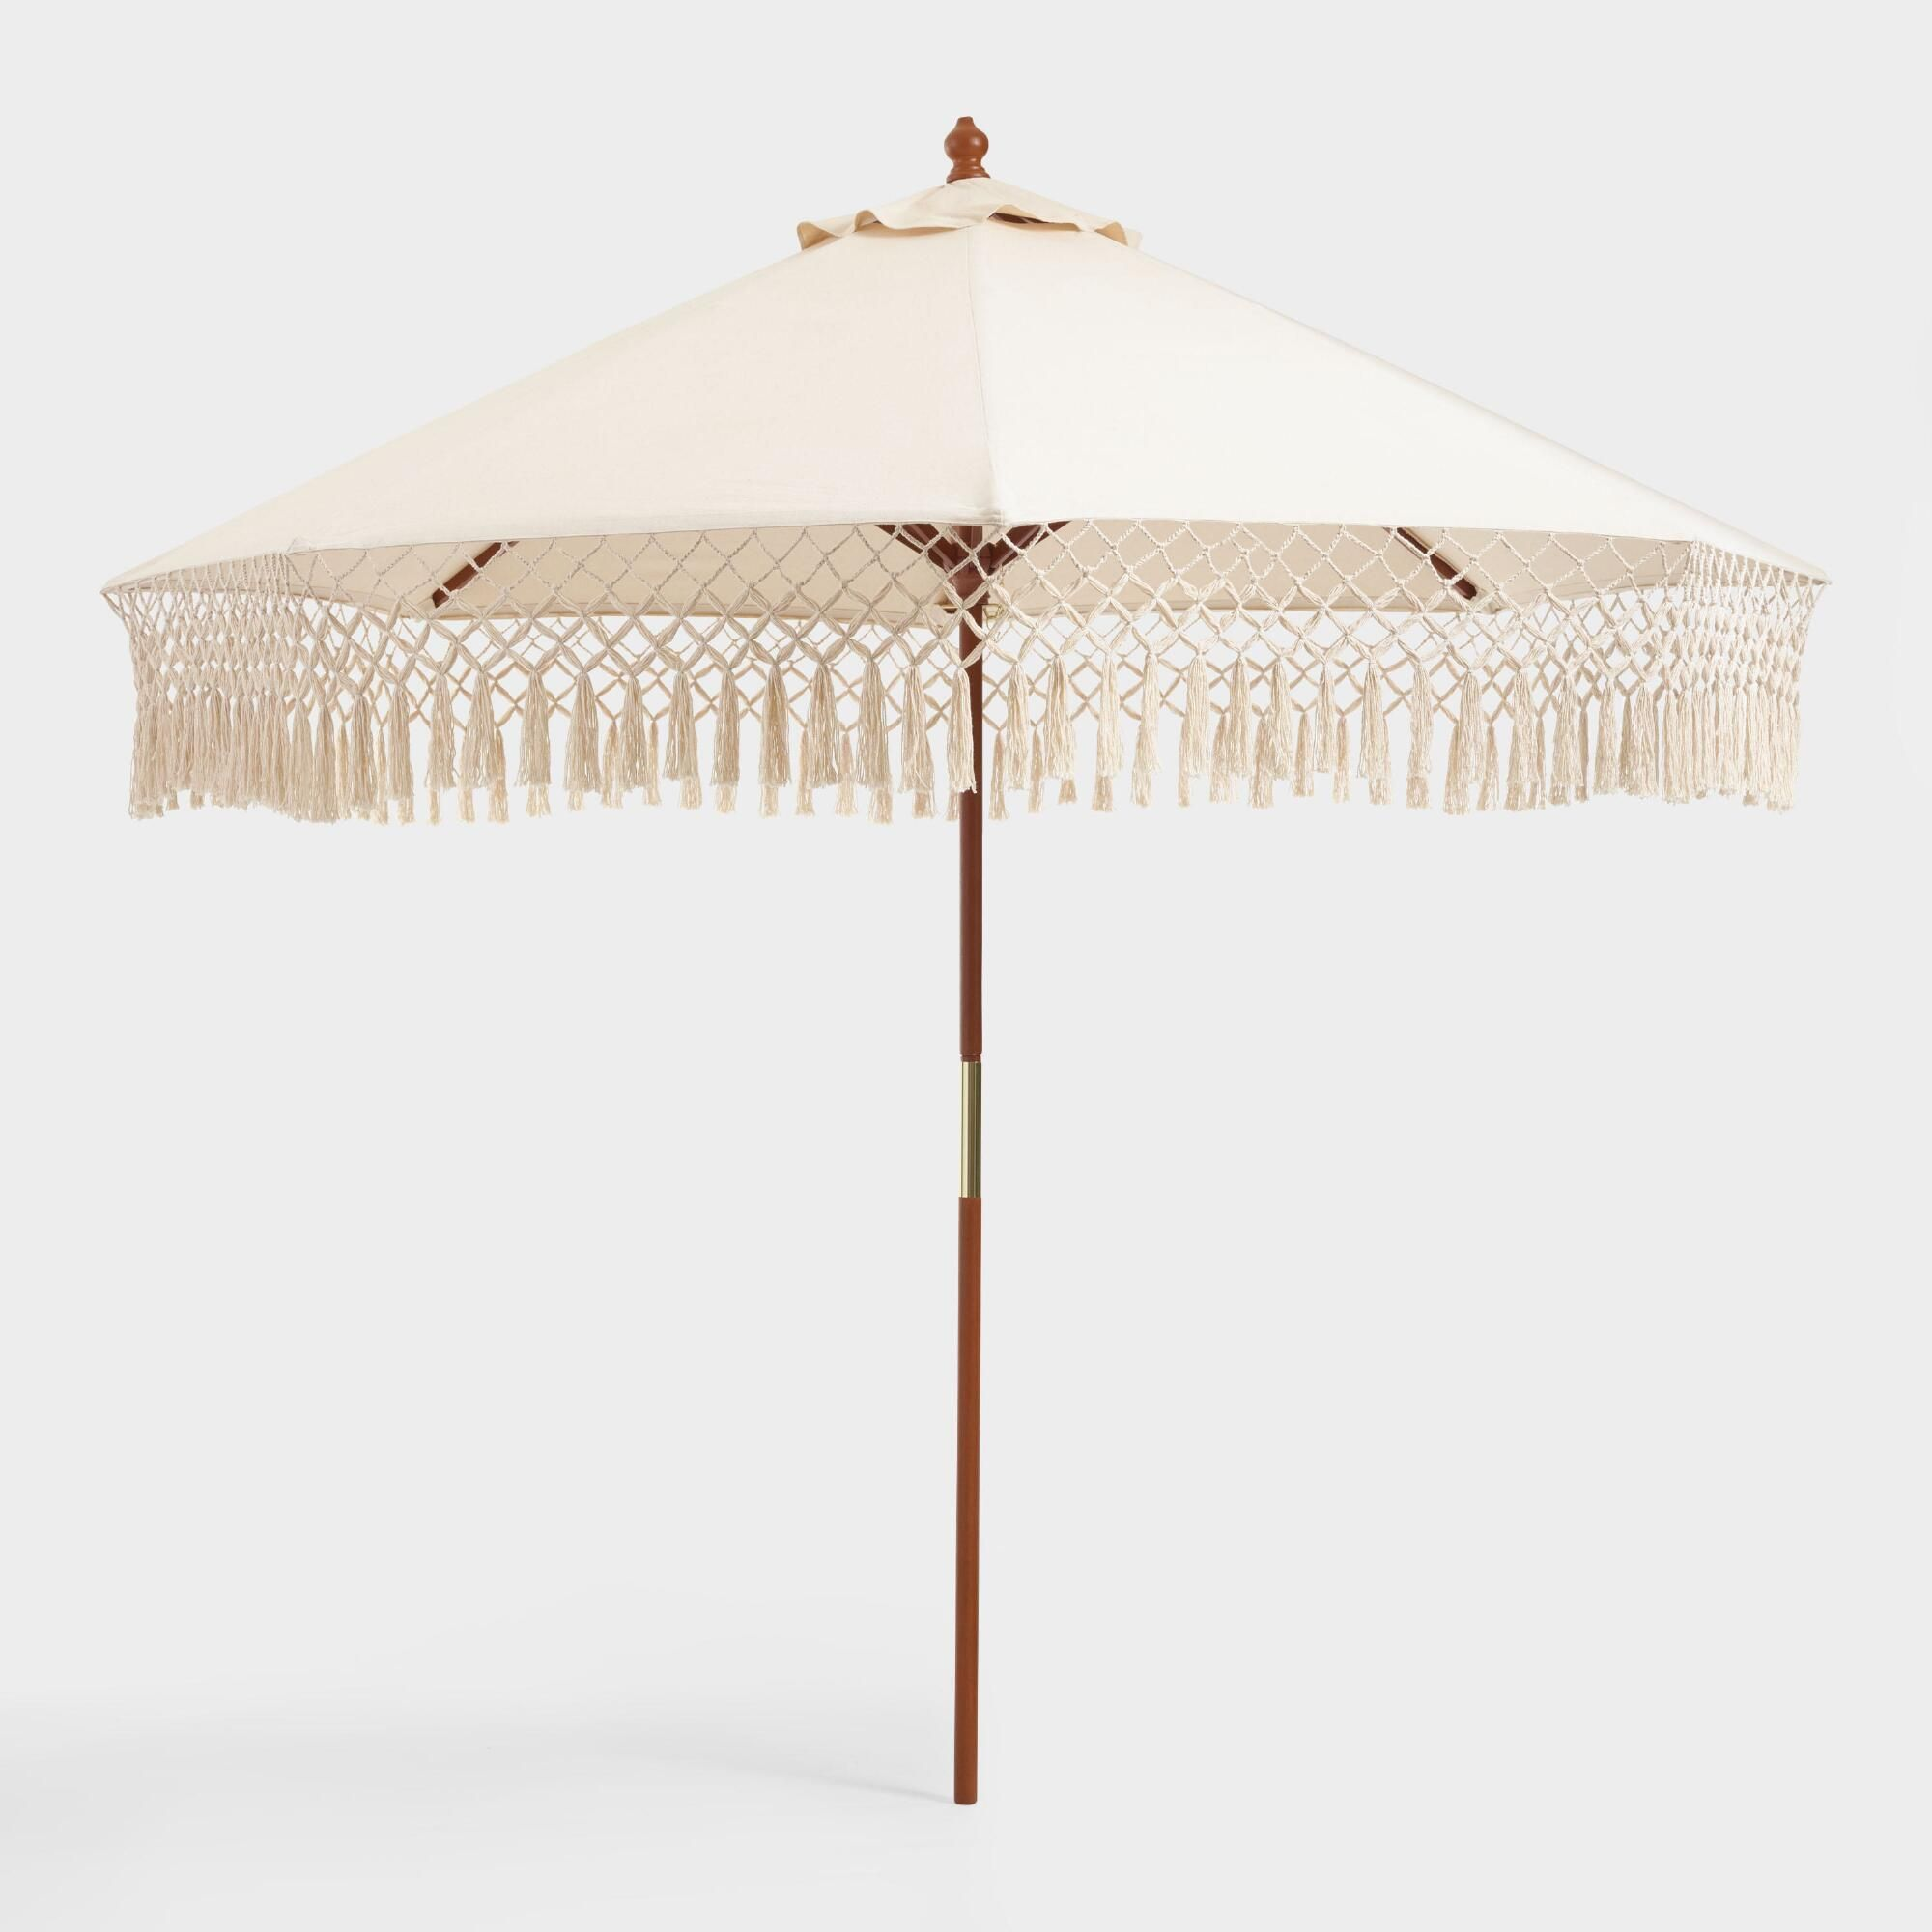 Natural 9 Ft Outdoor Patio Umbrella Canopy With Fringe By